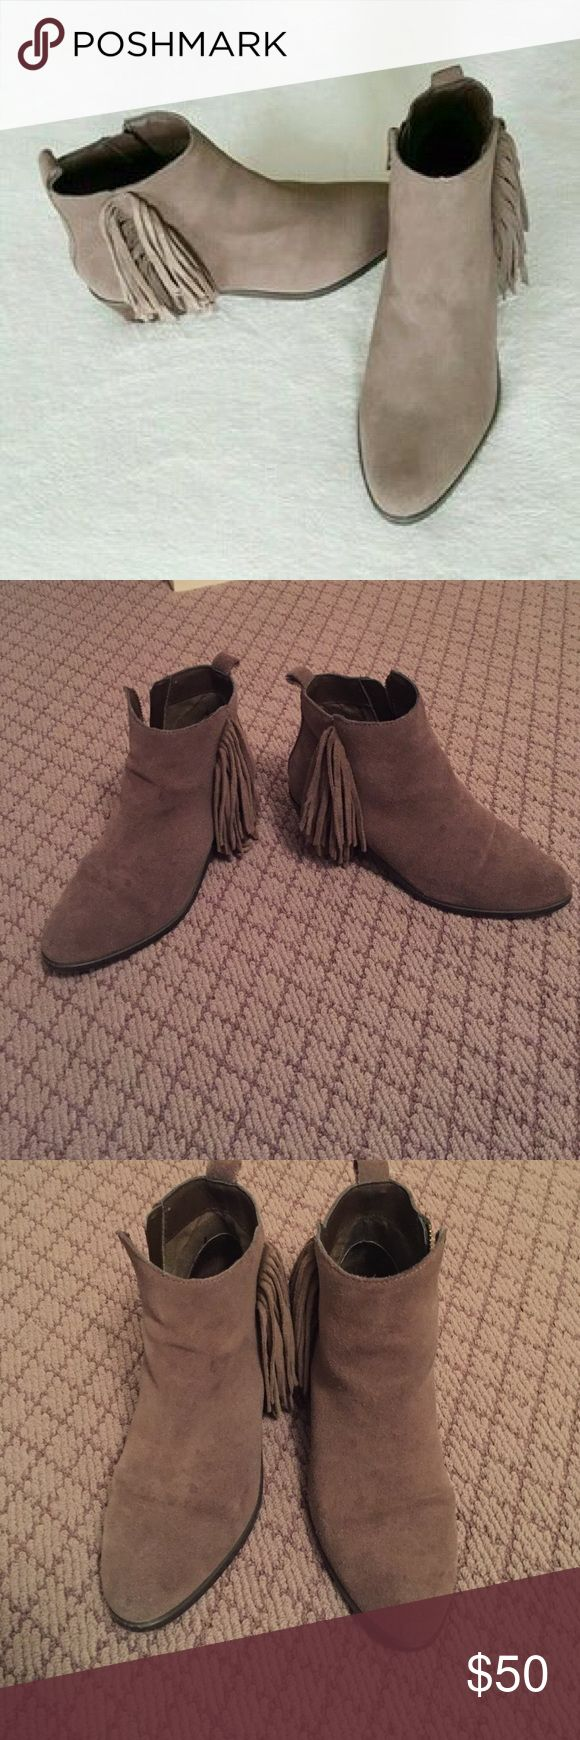 Steve Madden Skirty Bootie Steve Madden Skirty Bootie in suede taupe. Good condition! Size 5. Steve Madden Shoes Ankle Boots & Booties